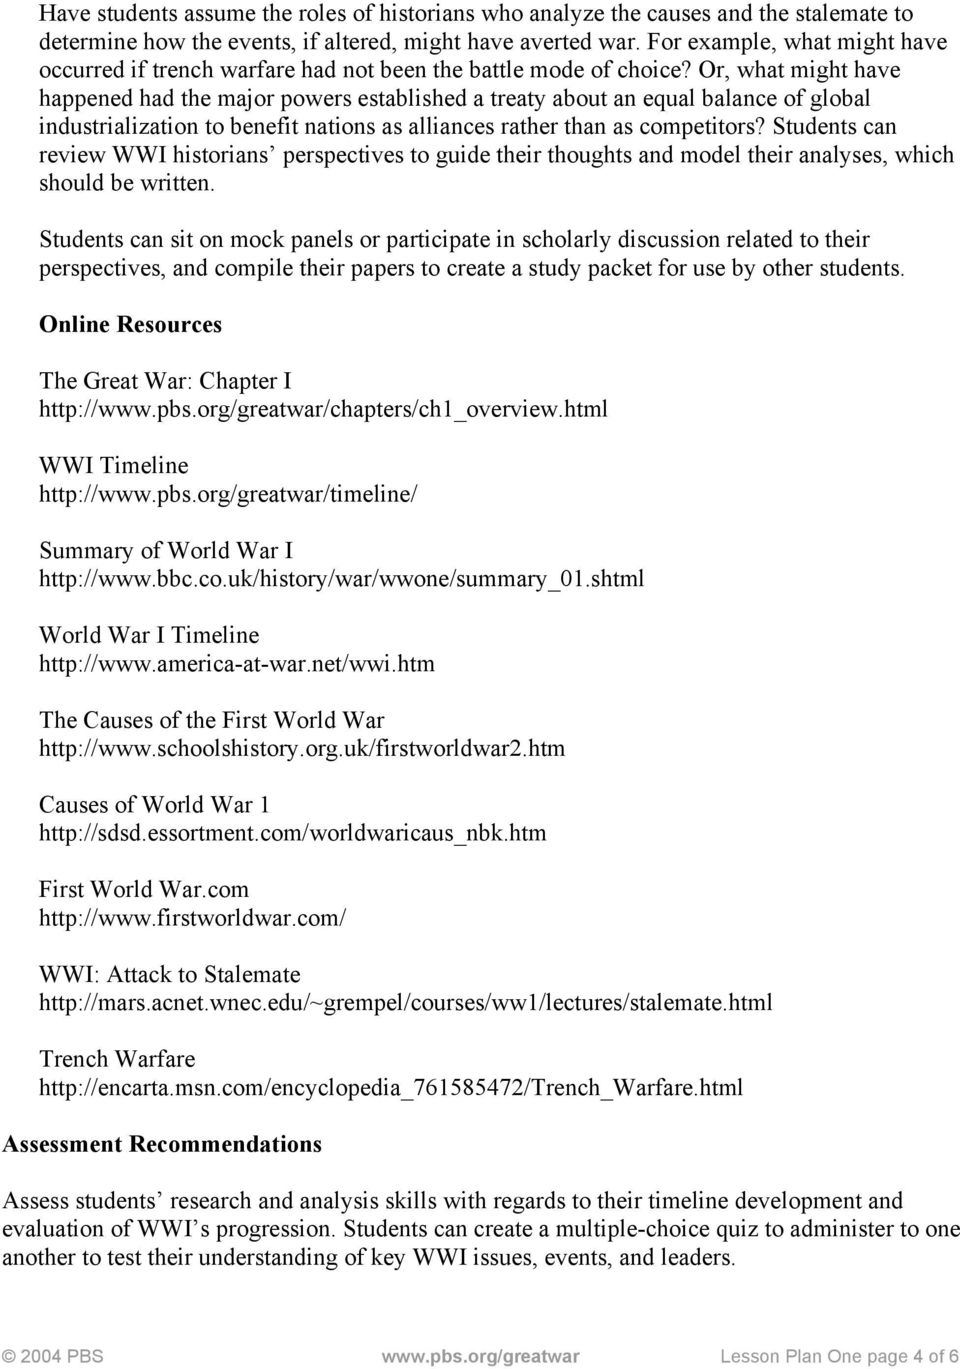 worksheet A Global Conflict Worksheet Answers the great war and shaping of 20th century pdf or what might have happened had major powers established a treaty about an equal